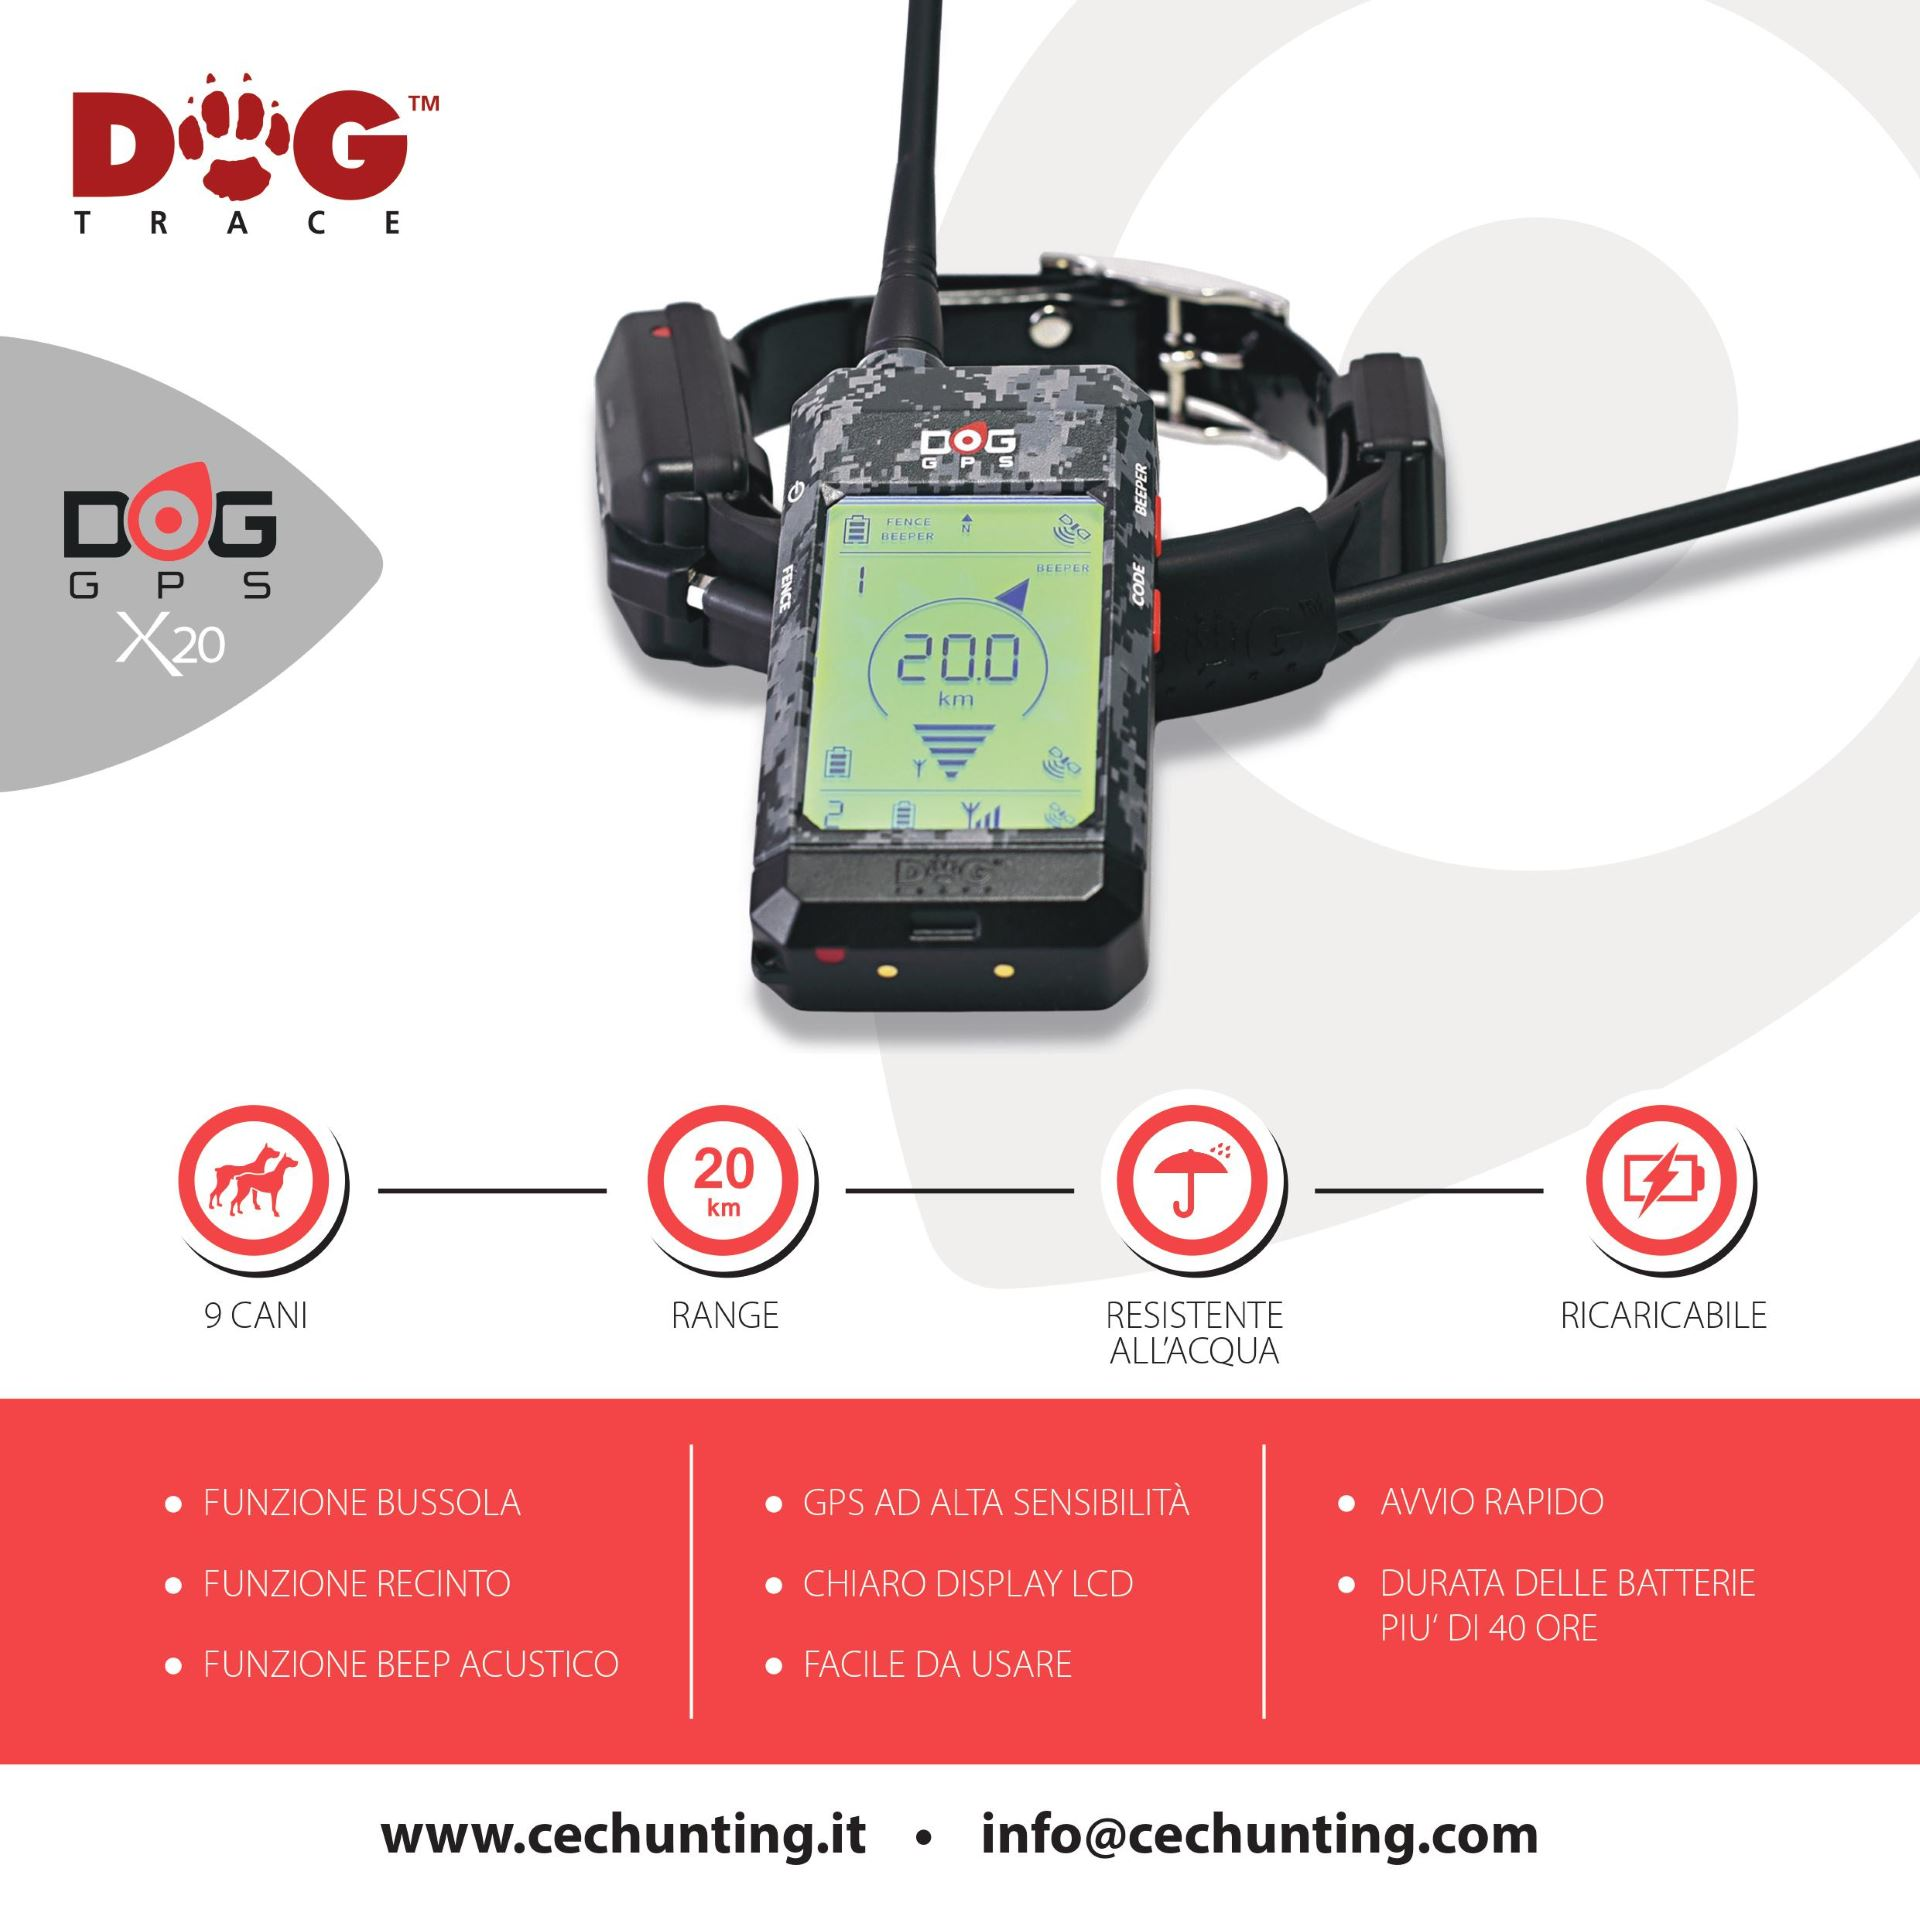 Brochure collare DOG GPS X20 Dogtrace